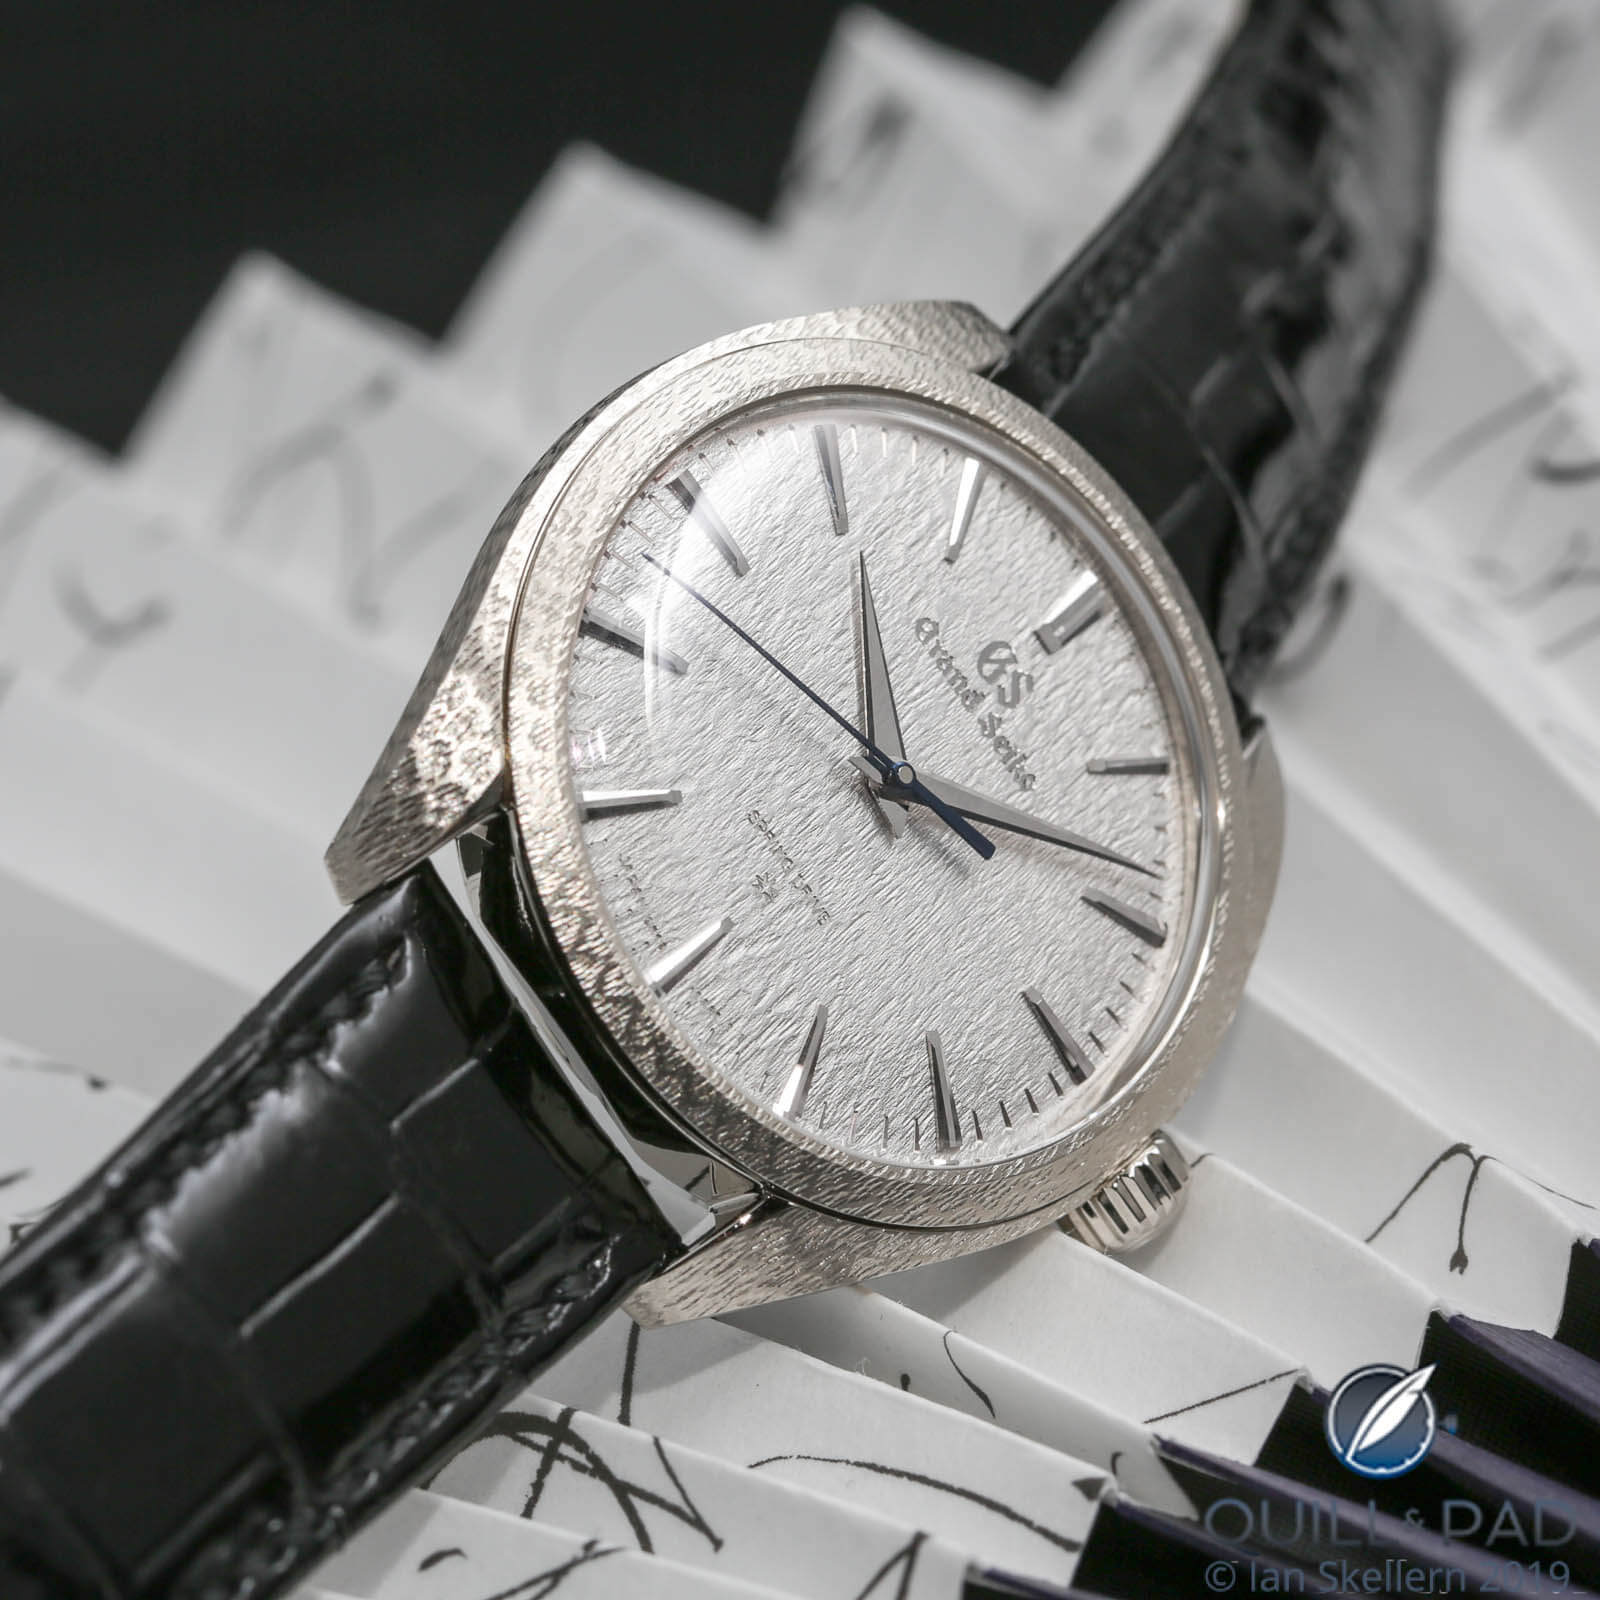 Grand Seiko Spring Drive Manual Wind Elegance